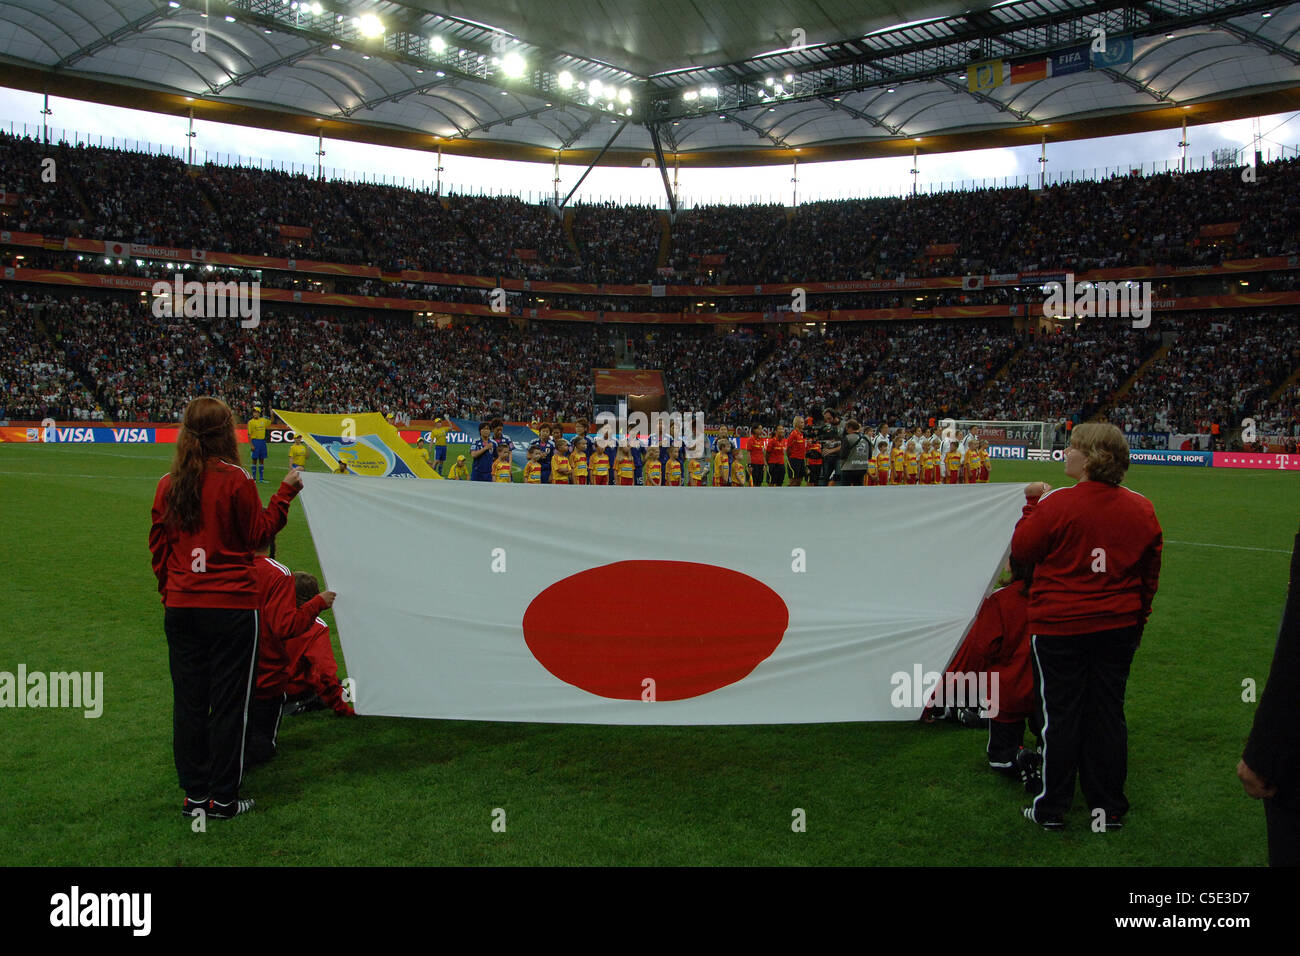 Two team groups : FIFA Women's World Cup Germany 2011 Final match between Japan 2(3 PK 1)2 United States. - Stock Image